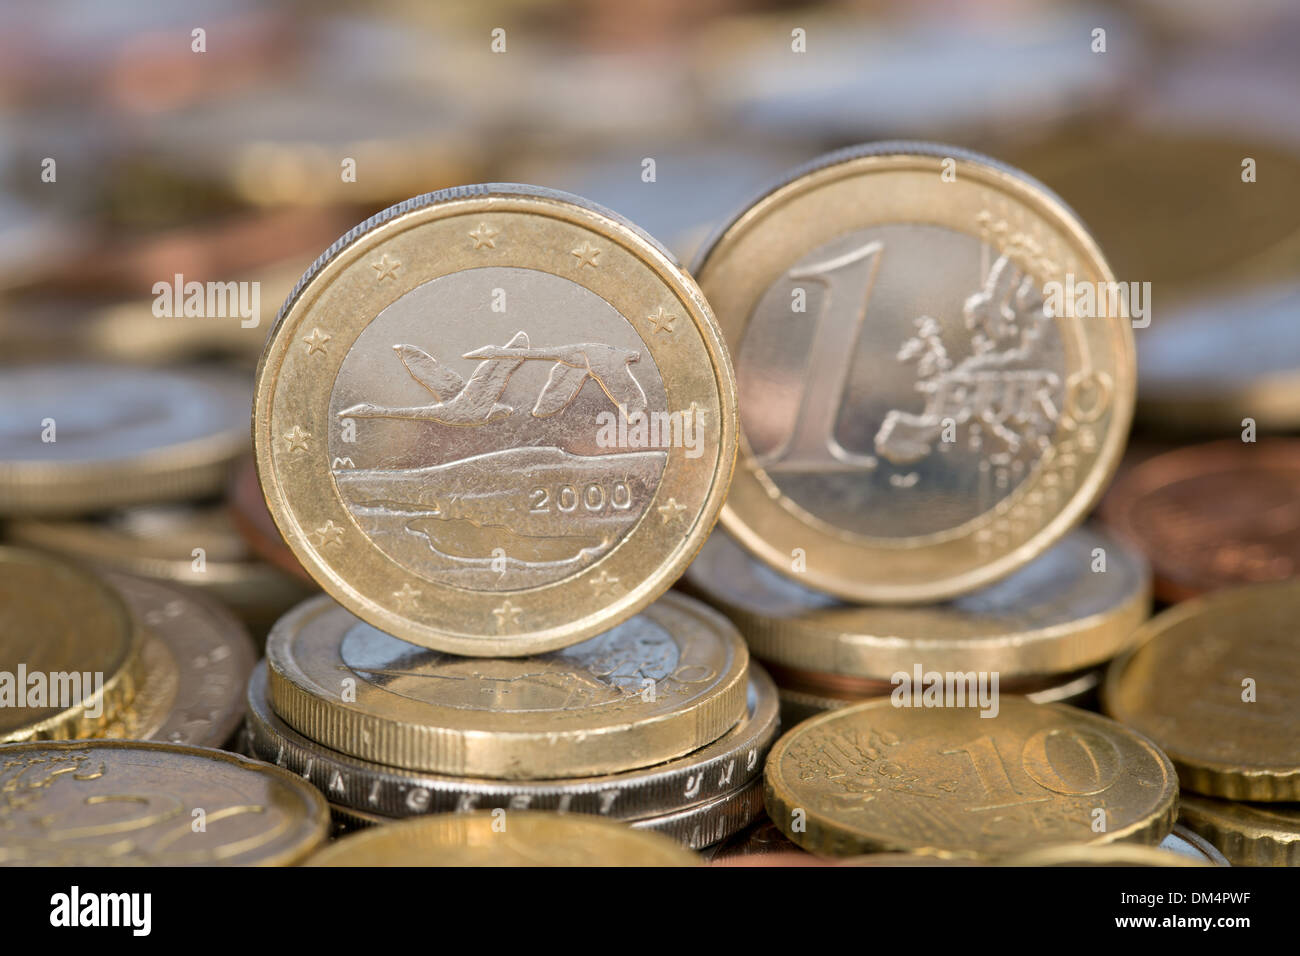 A one Euro coin from the EU member country Finland - Stock Image